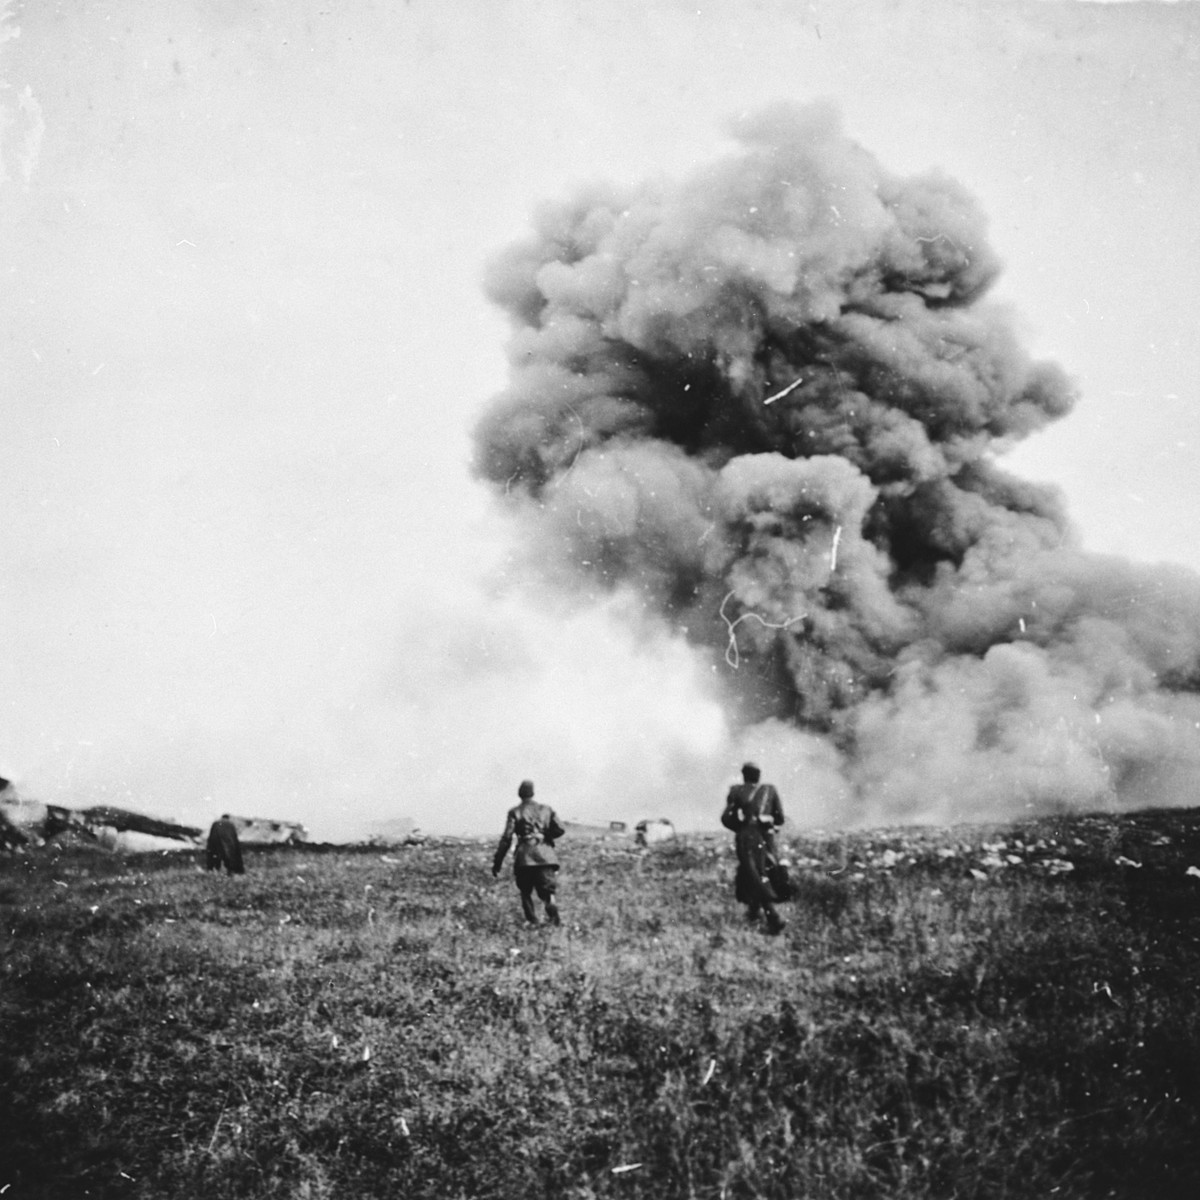 """Members of a Hungarian forced labor battalion run from an explosion [in Oradea] where they are accompanying the Hungarian army's advance into Transylvania.  The original caption reads, """"After the explosion, a cloud of smoke."""""""